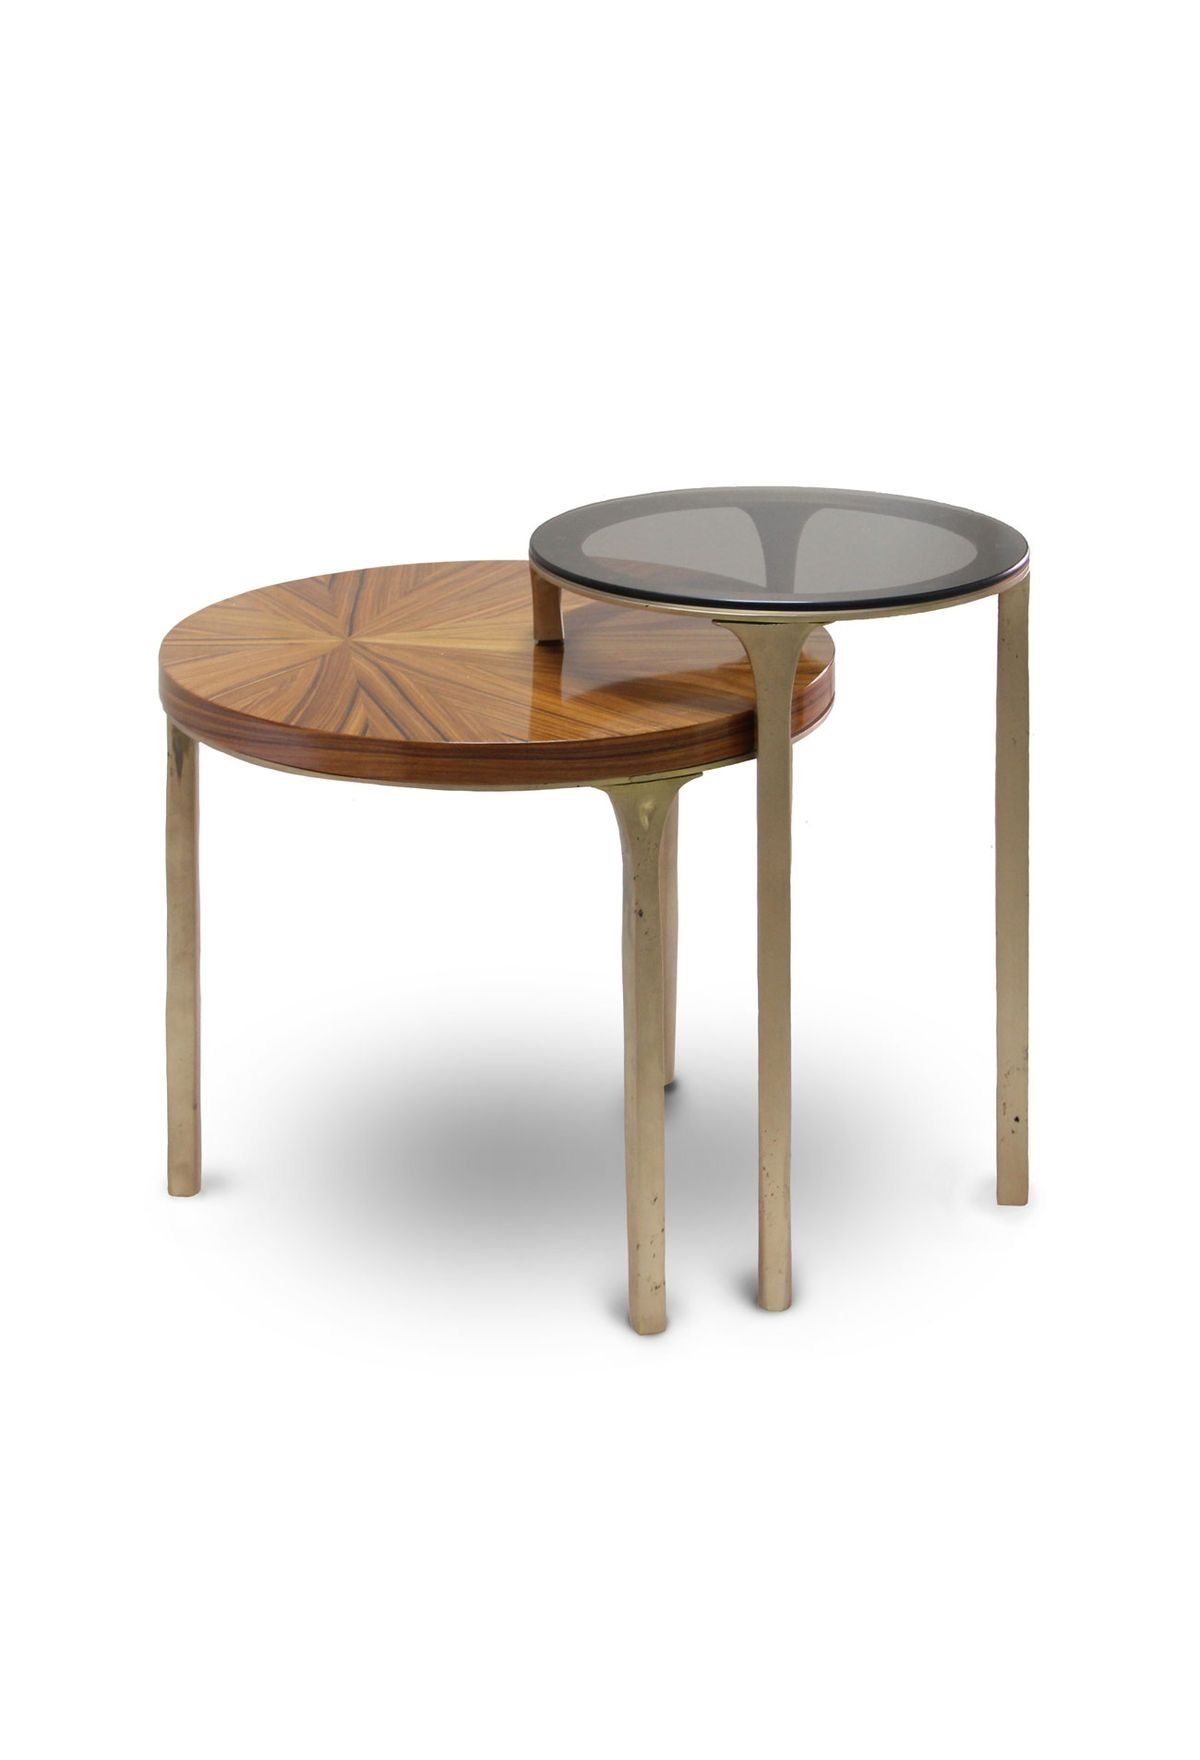 Rattan Stripes Cocktail Table Transitional Organic Coffee Cocktail Tables Dering Hall Cool Coffee Tables Rattan Coffee Table Coffee Table Wood [ 1920 x 3108 Pixel ]